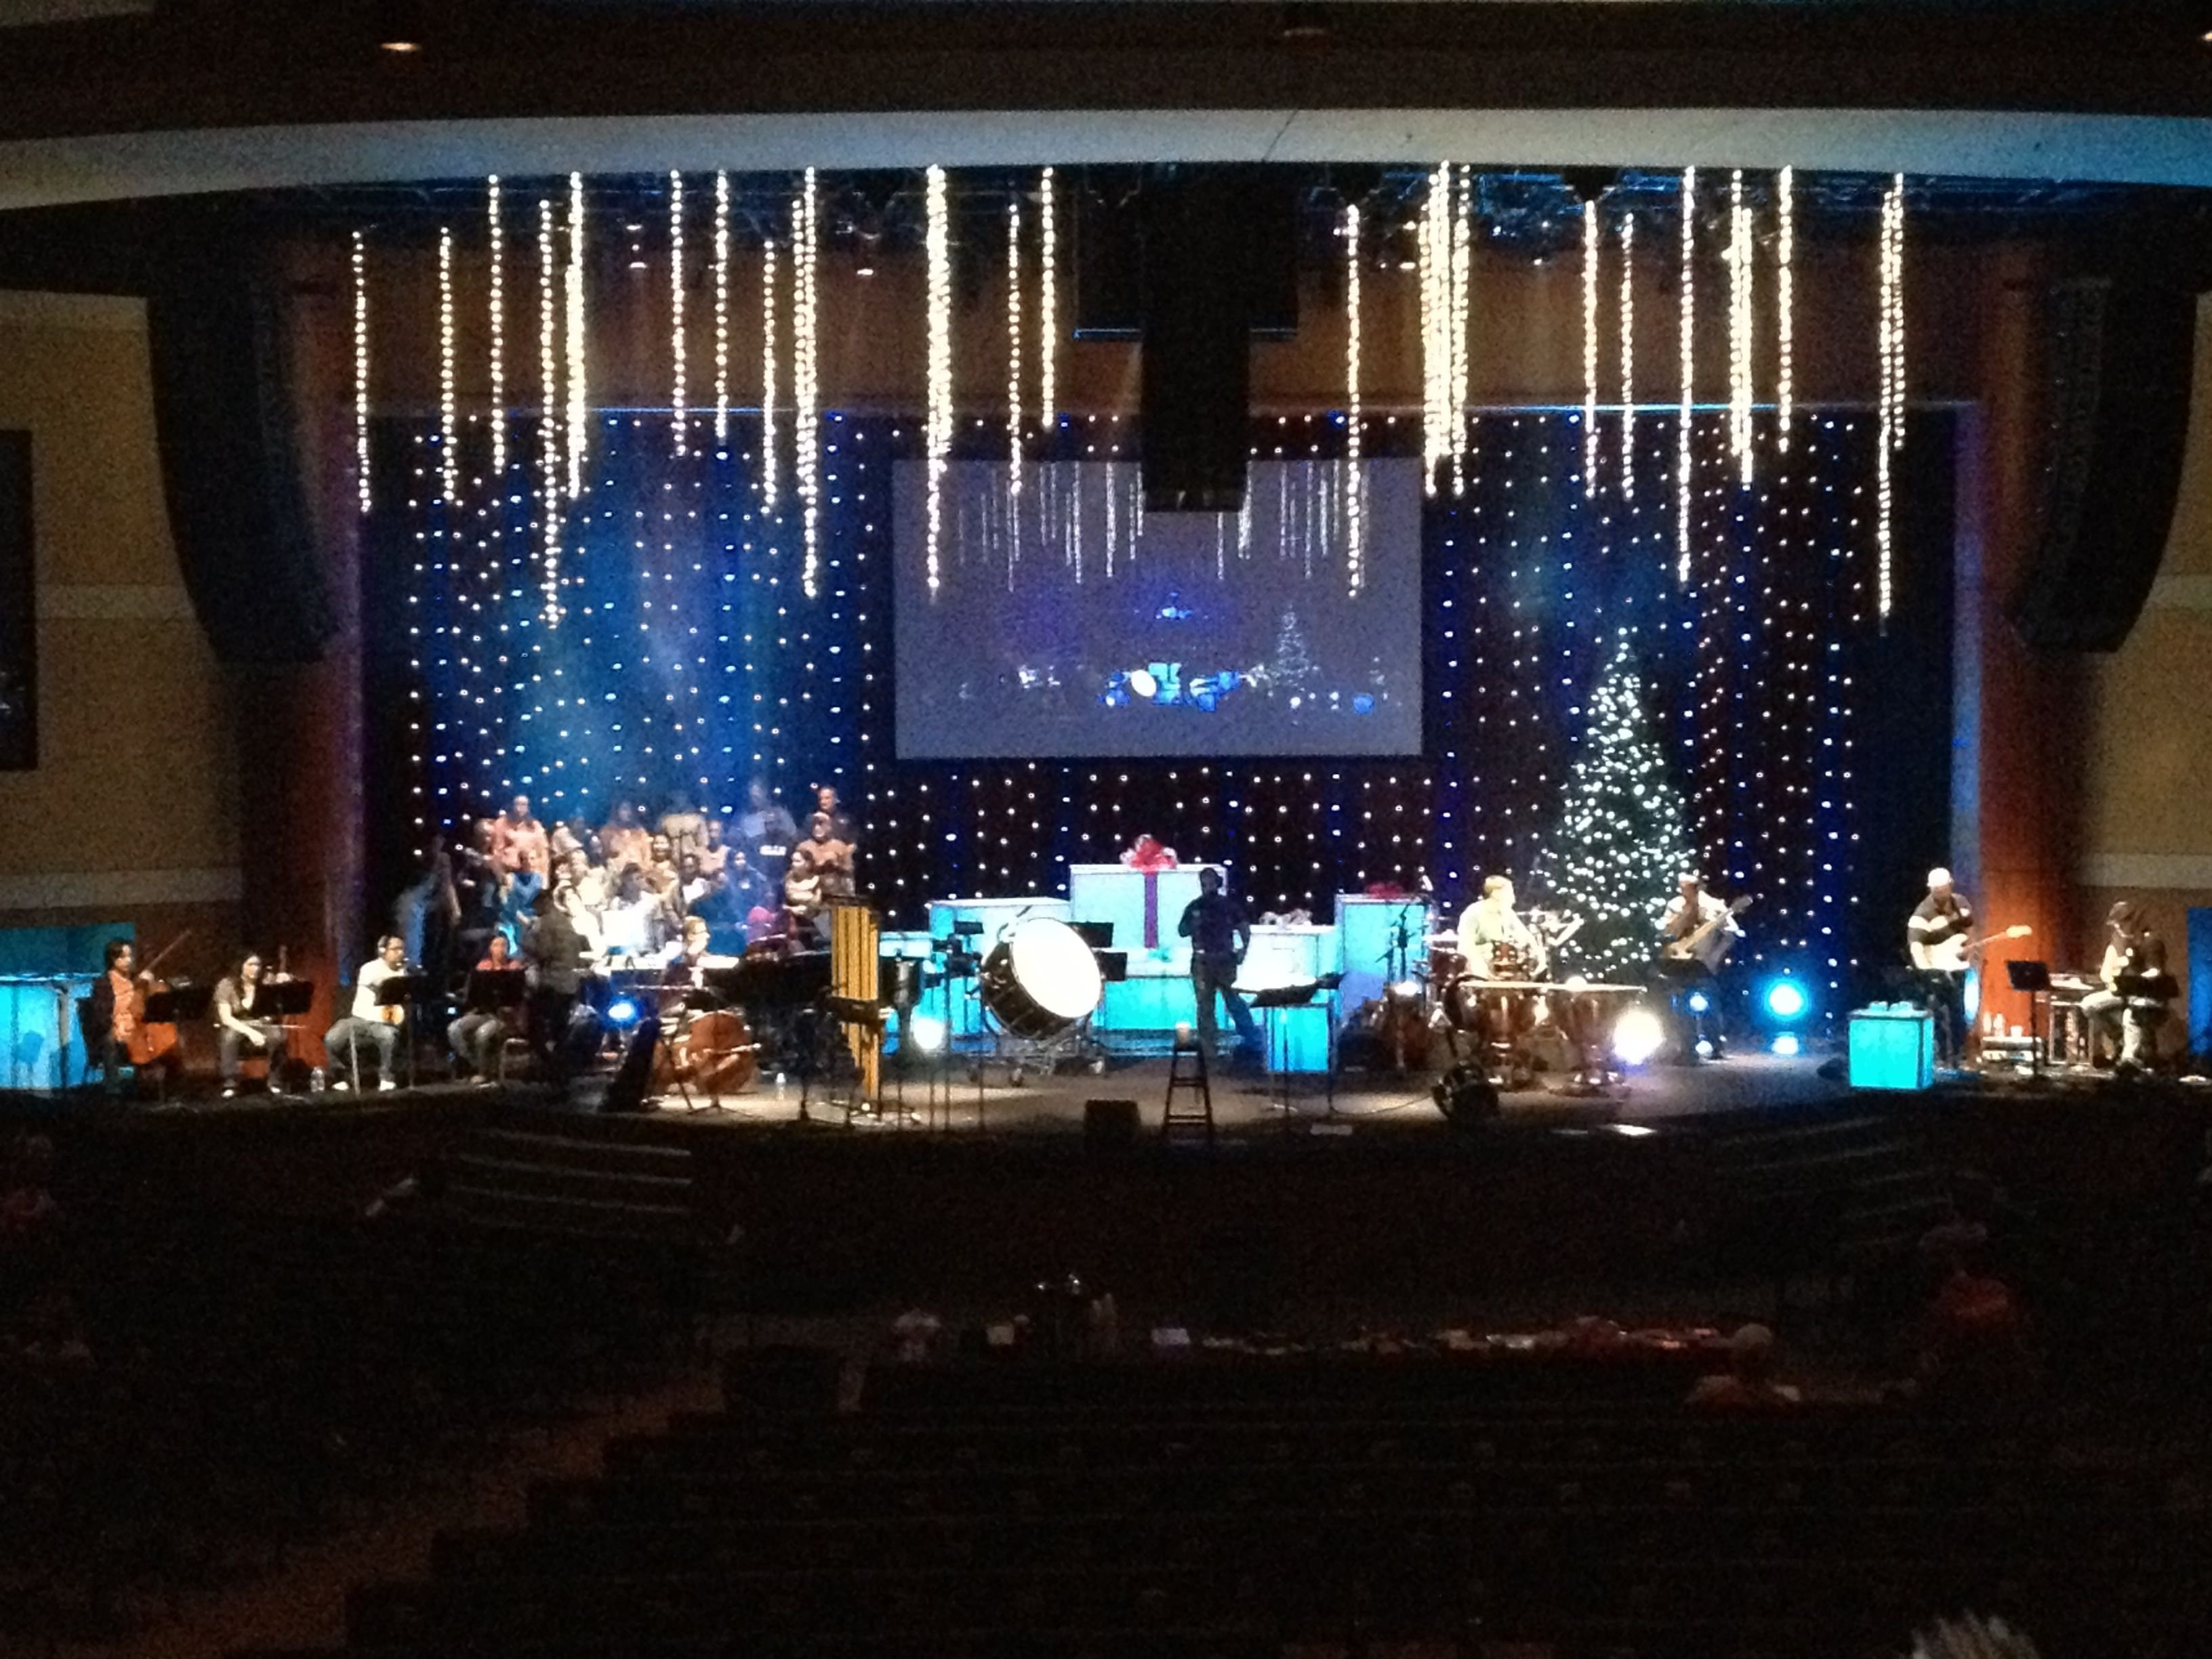 10 Unique Small Church Stage Design Ideas small church stage design falling stars church set and alter 2020